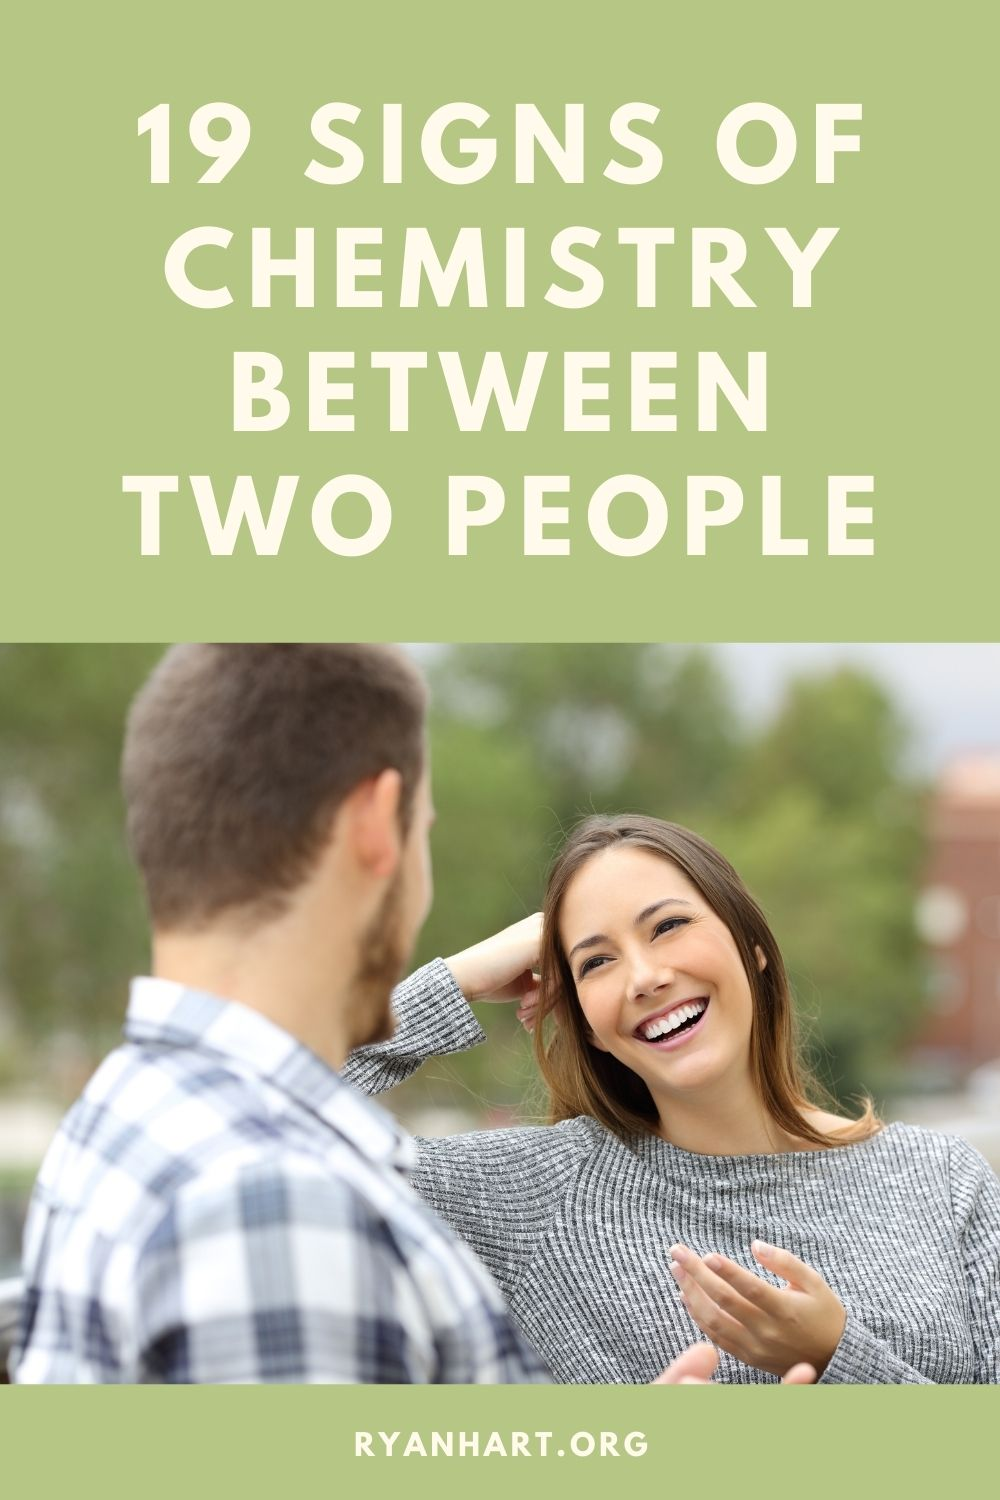 Signs of Chemistry Between Two People